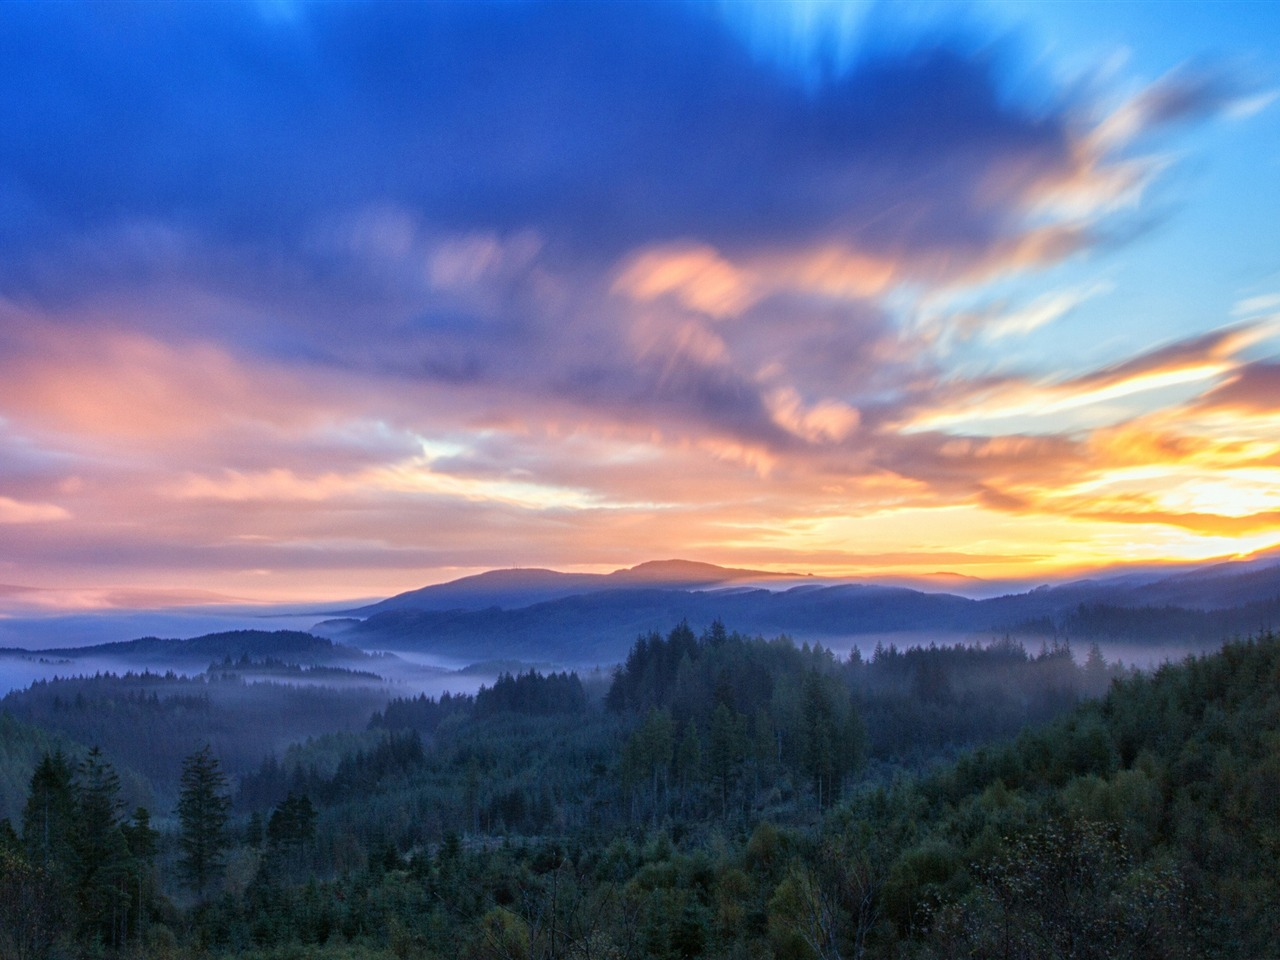 Forest sunrise clouds-Beautiful landscape wallpaper - 1280x960 wallpaper download